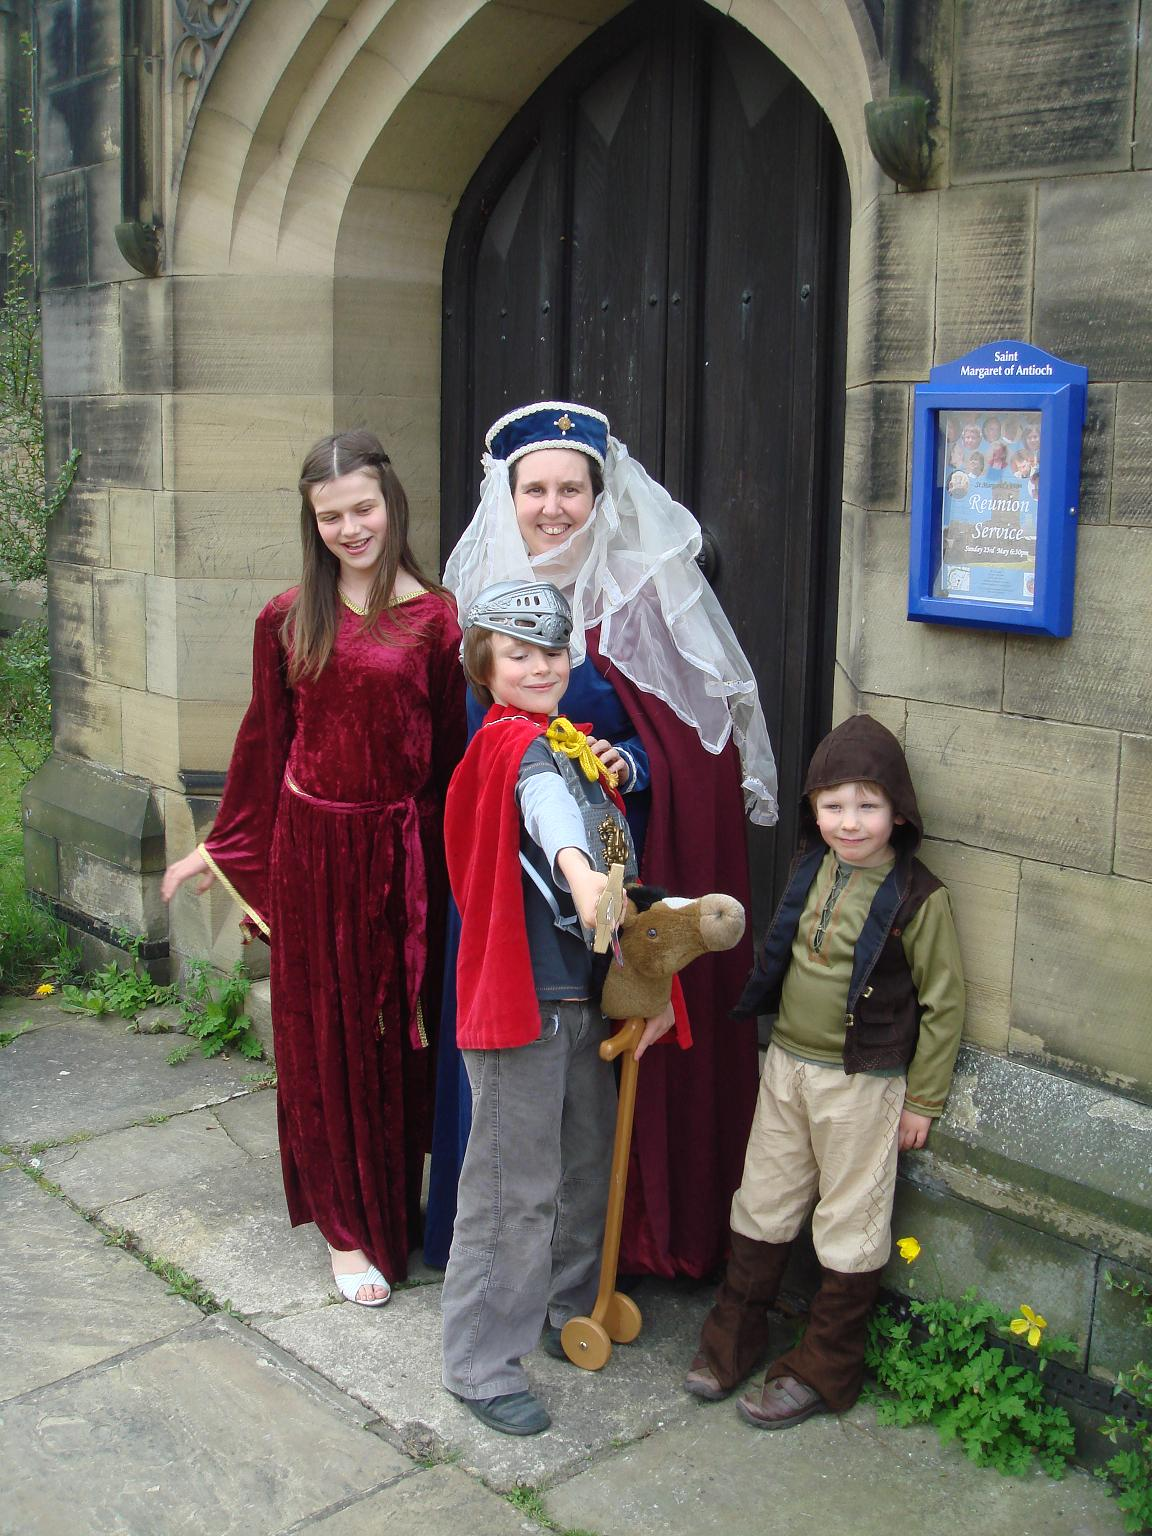 Daniel Lyons as a knight, Elizabeth Harper as a 14th Century noble woman and Emma Lyons and Thomas Moles prepare for St Margaret's Church's medieval fair